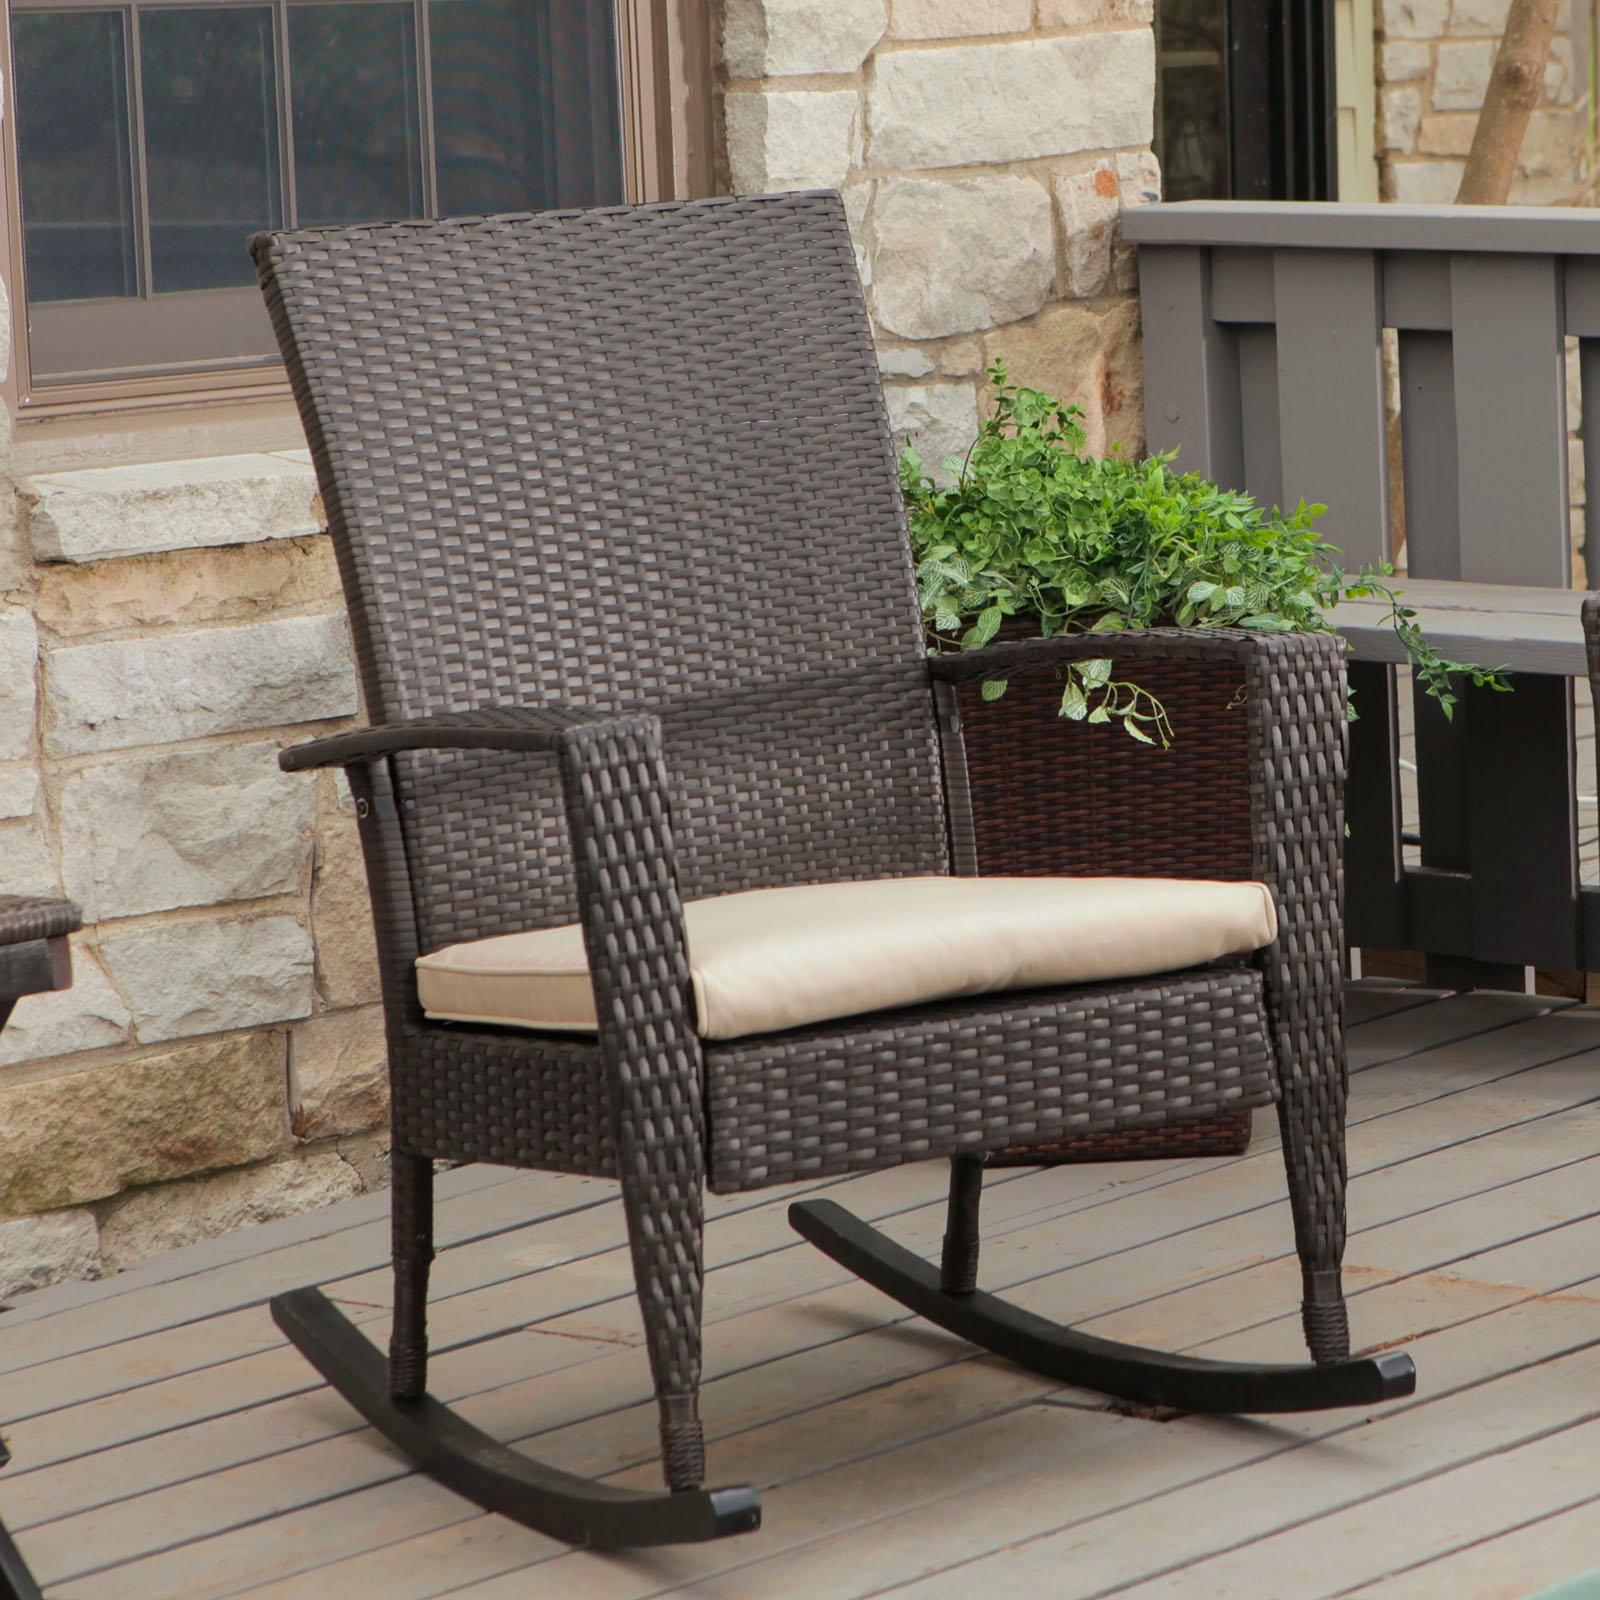 Beauty Porch Rocking Chair